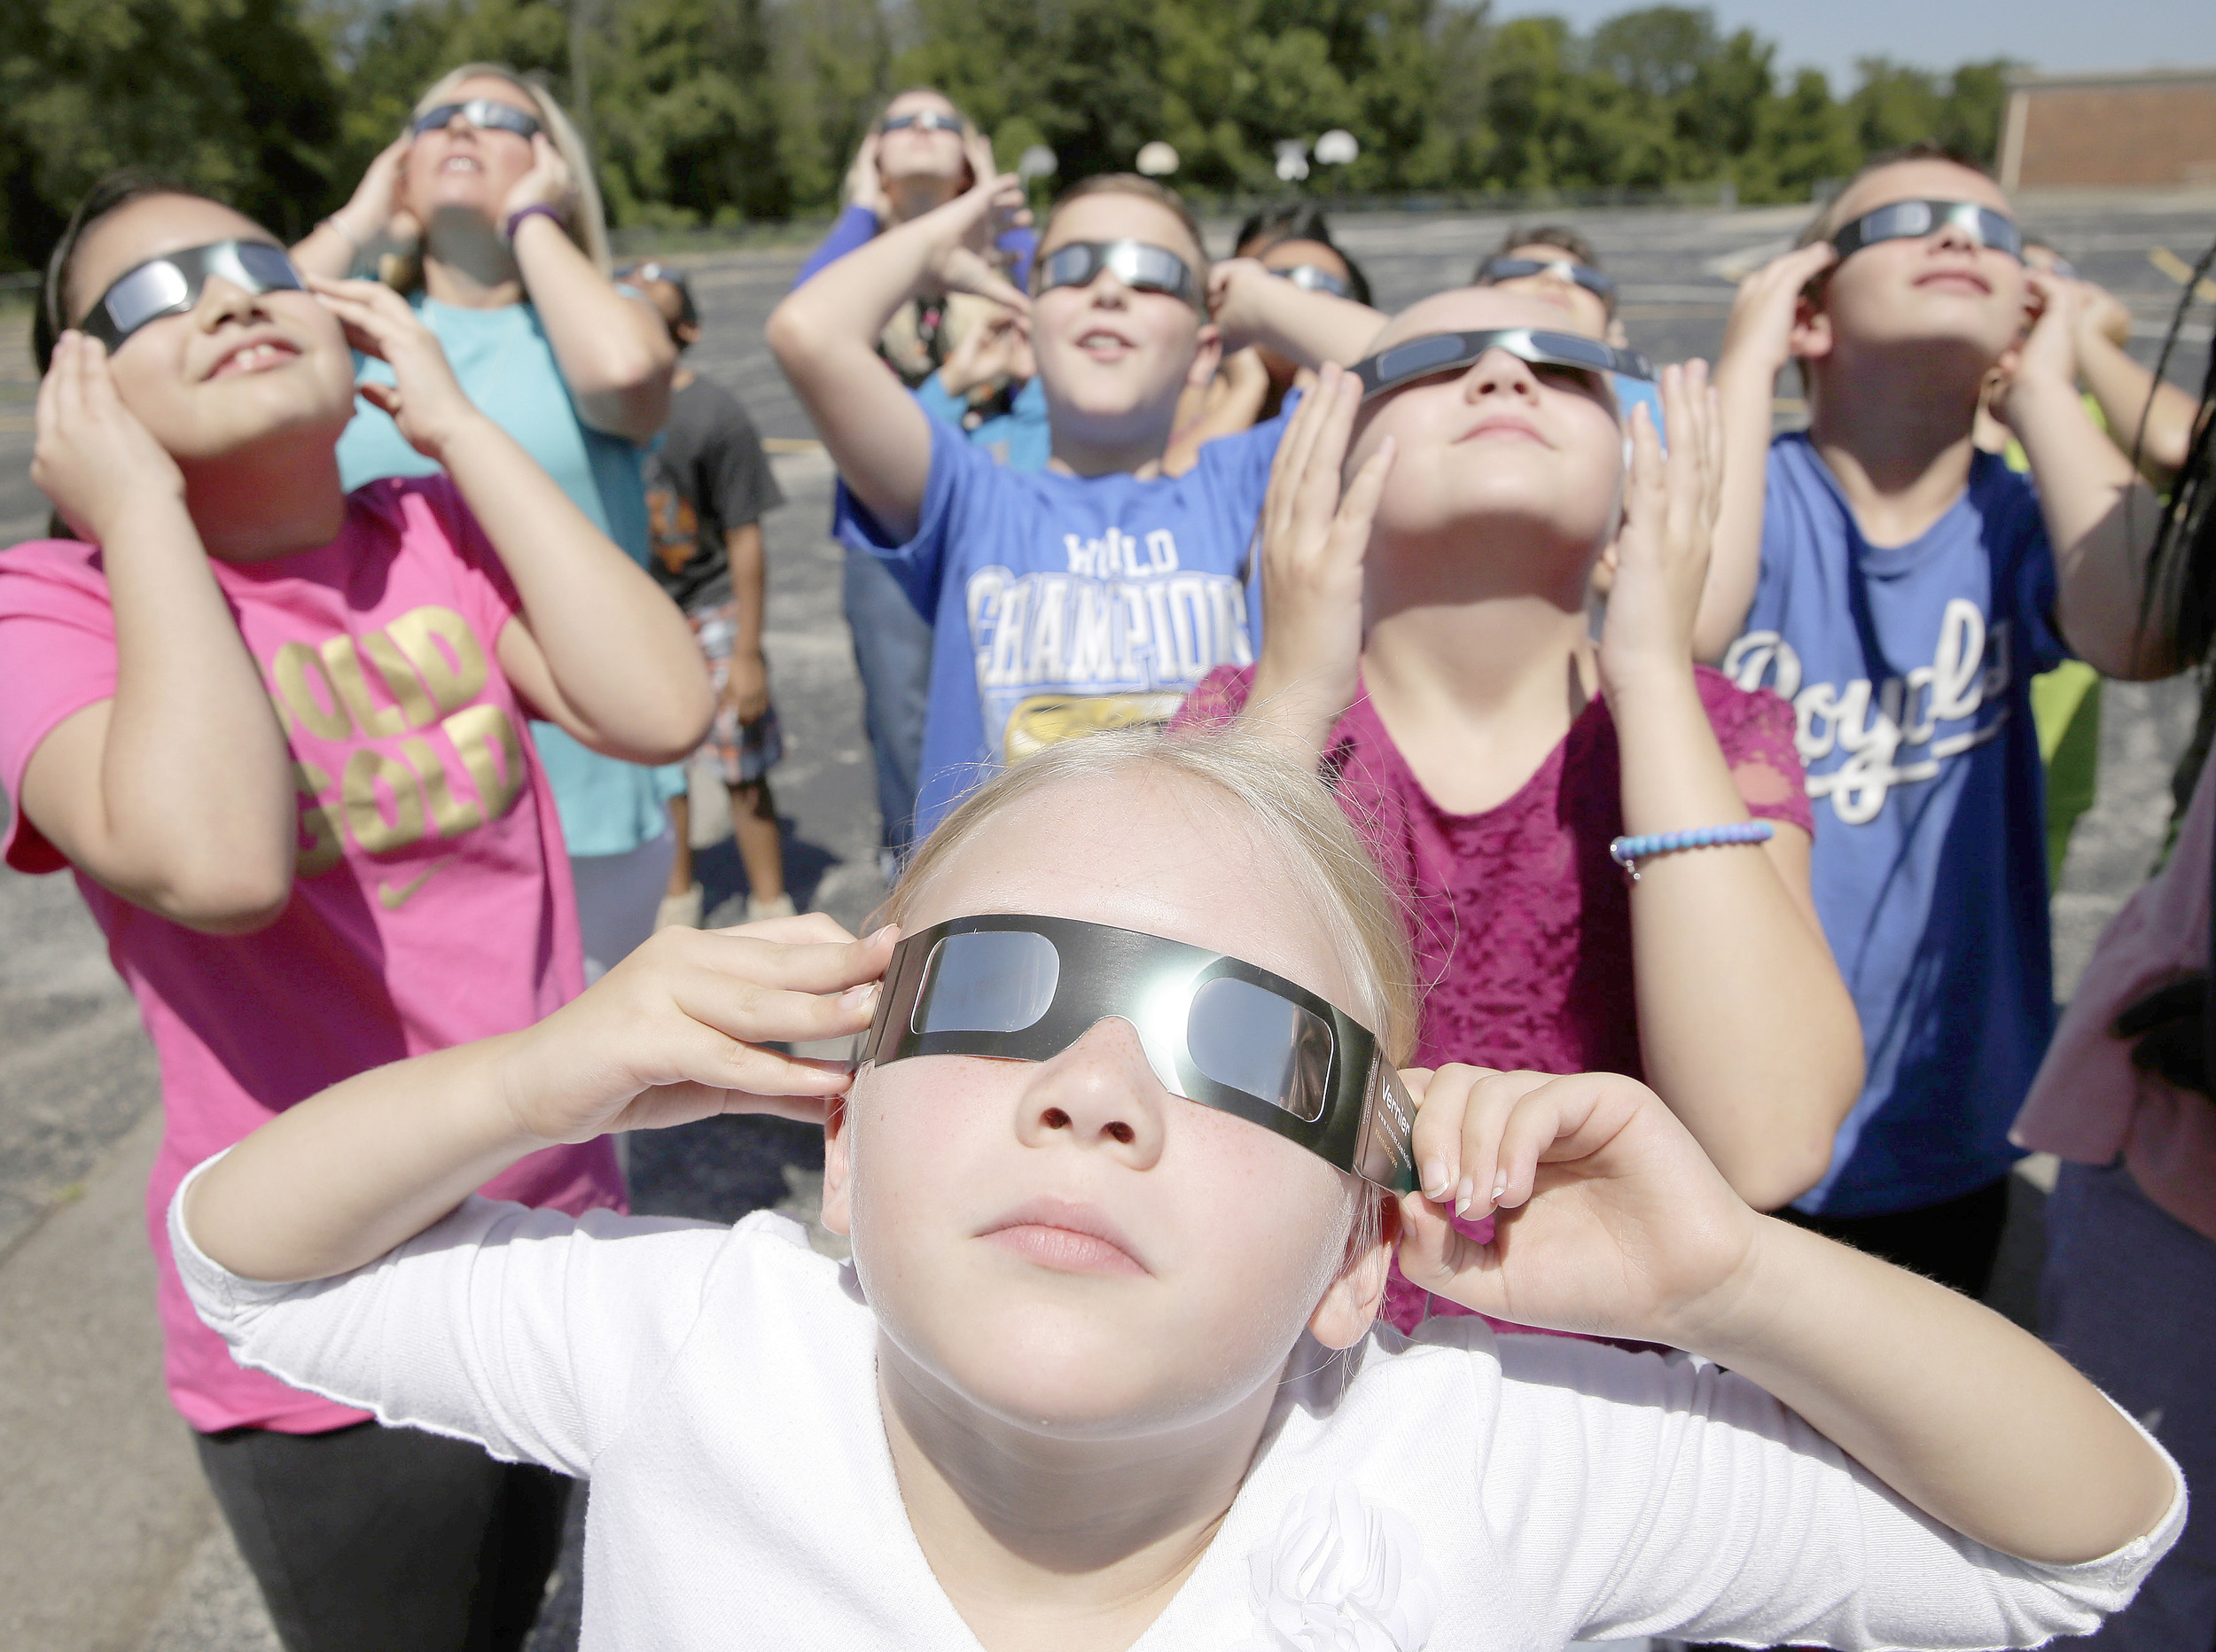 Hundreds line up to get glasses, watch eclipse at library